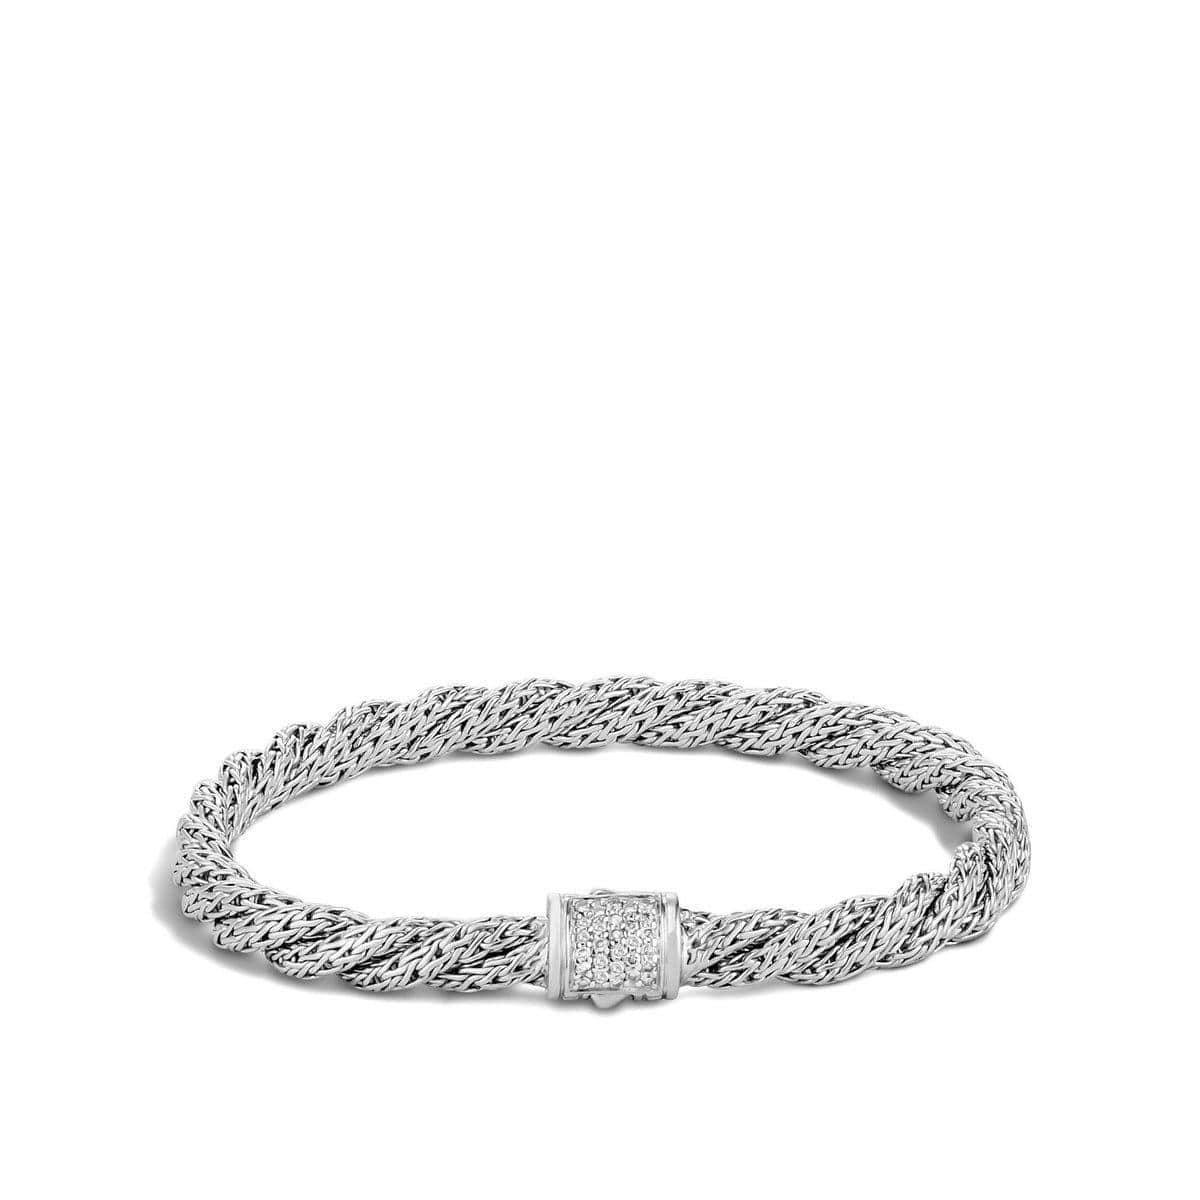 Twisted Chain Bracelet with Diamonds - BBP996972DI-John Hardy-Renee Taylor Gallery